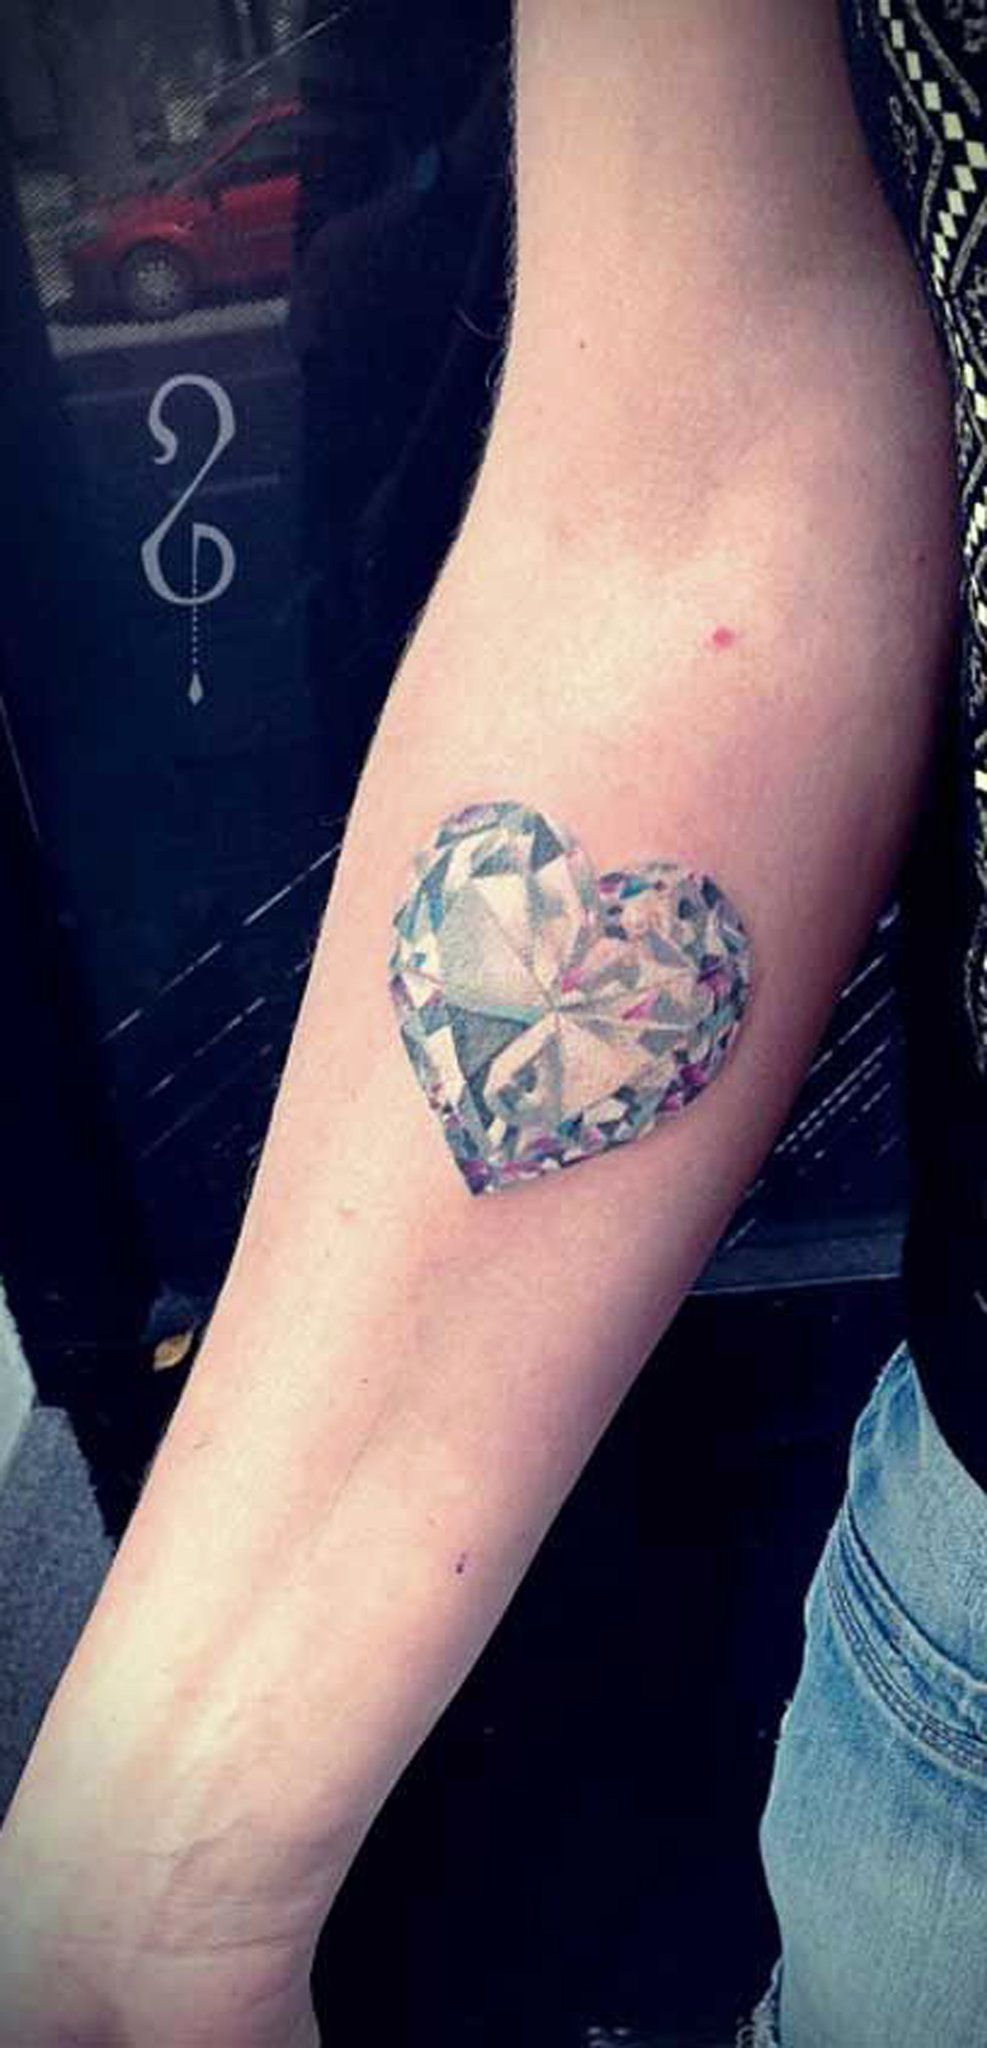 Unique Crystal Heart Forearm Tattoo Ideas for Women